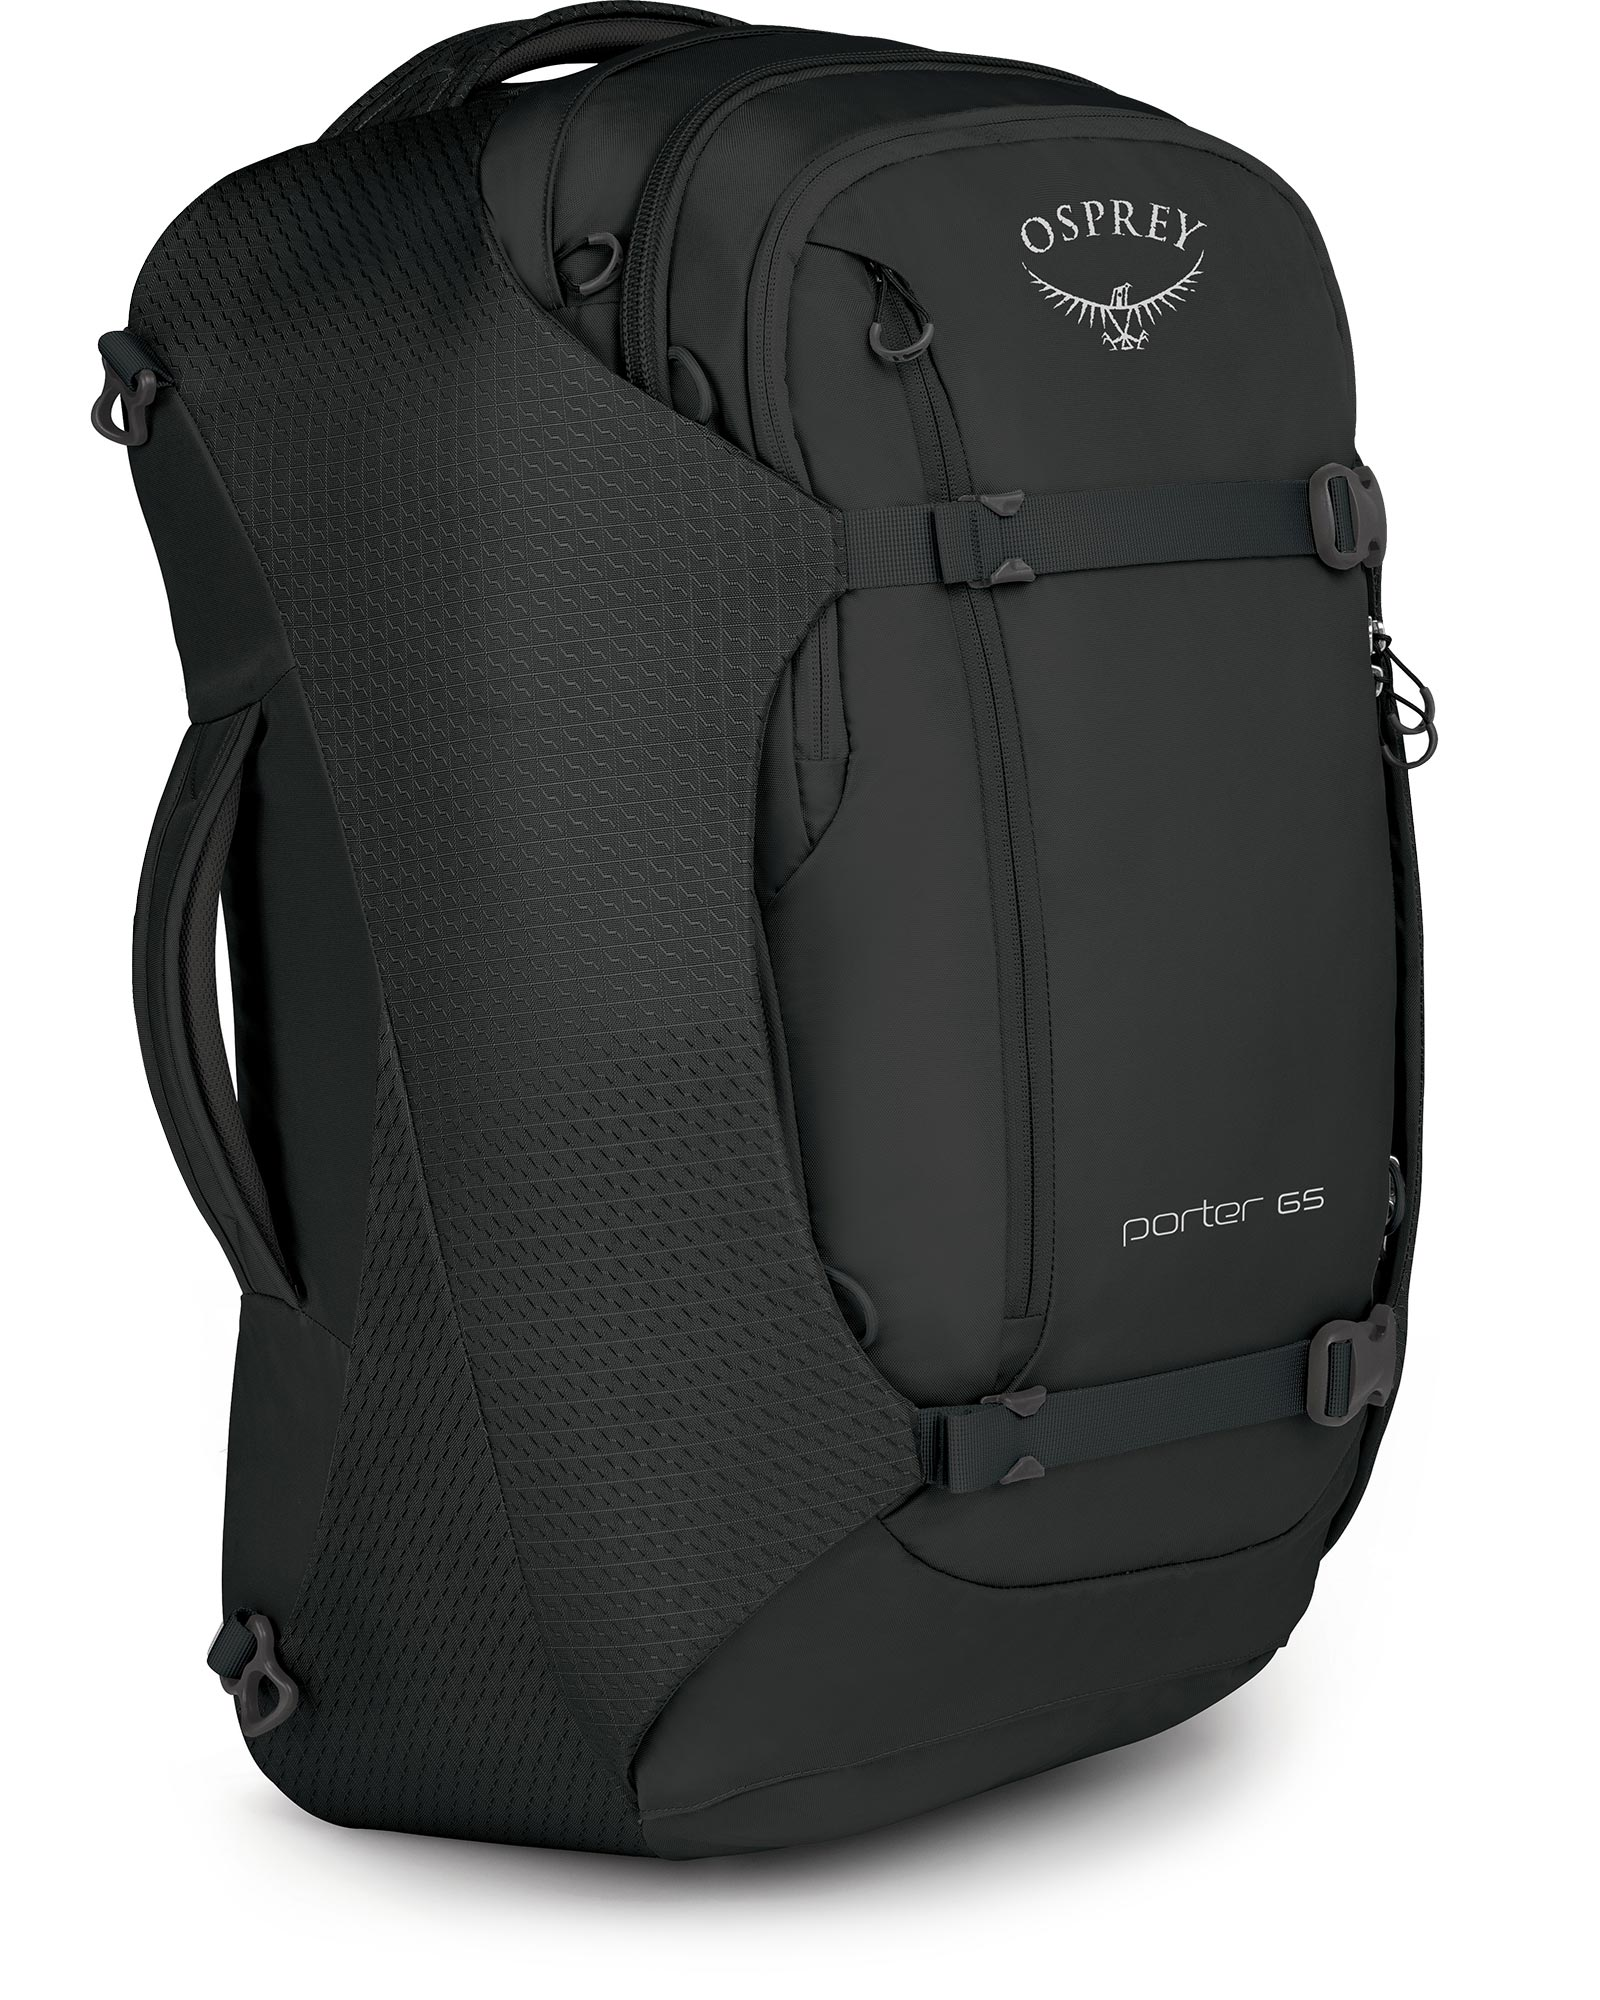 Osprey Porter 65 Backpack 0